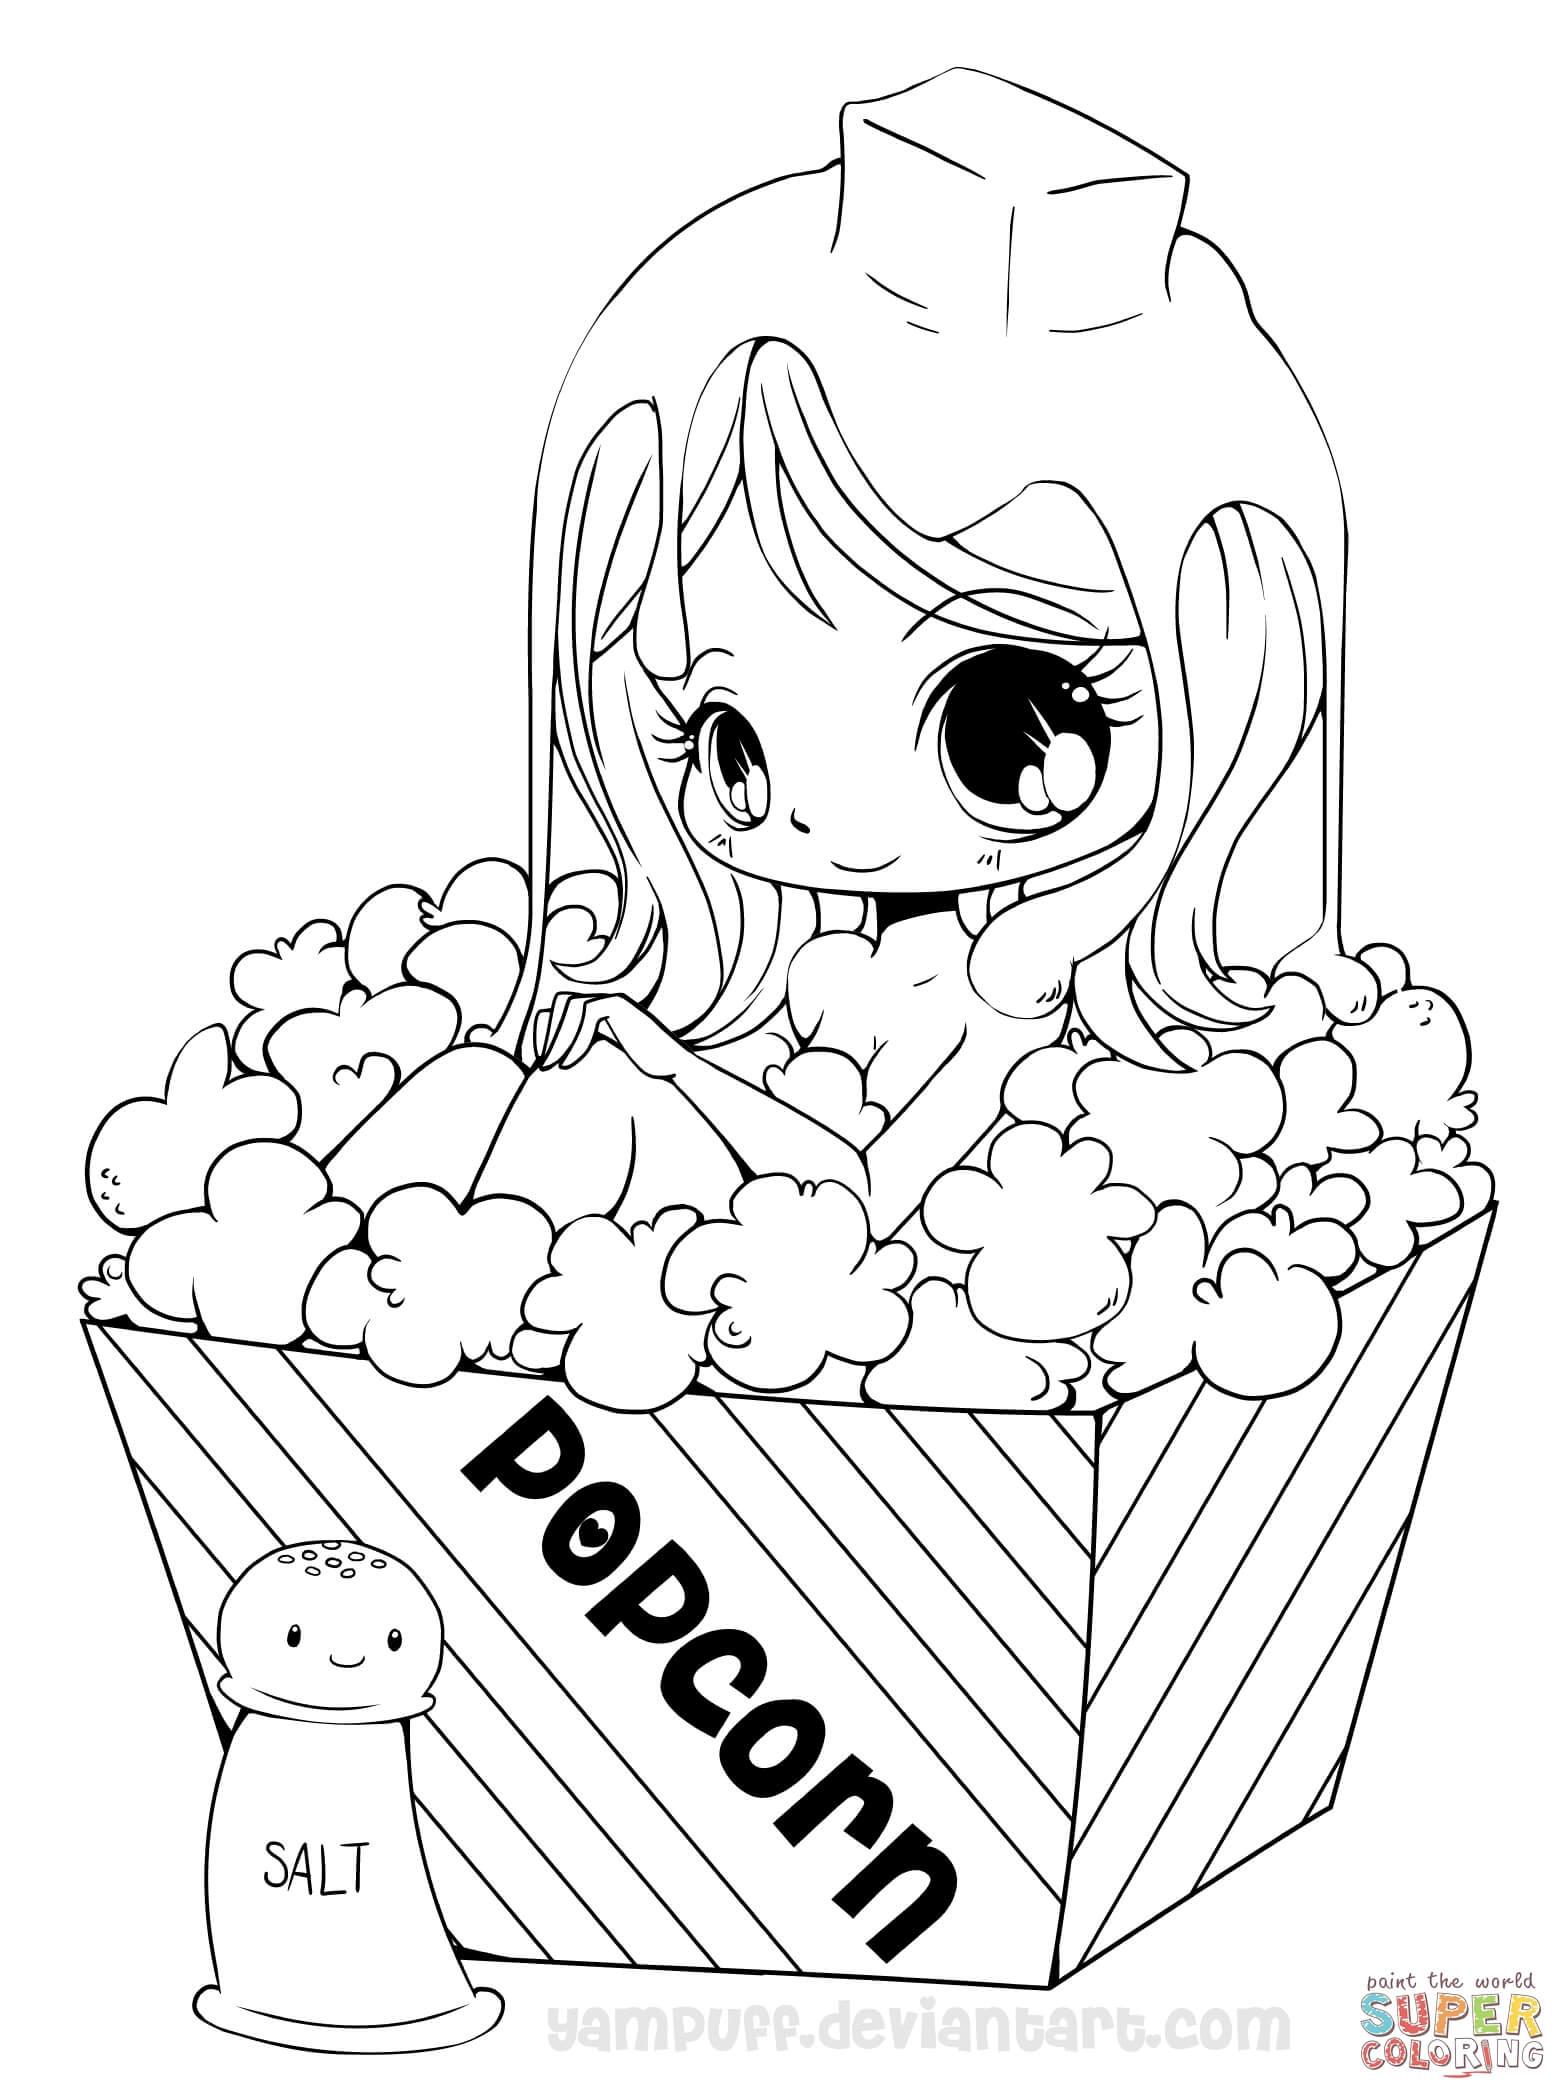 Chibi Popcorn Girl Coloring Page | Free Printable Coloring Pages - Free Printable Coloring Pages For Girls